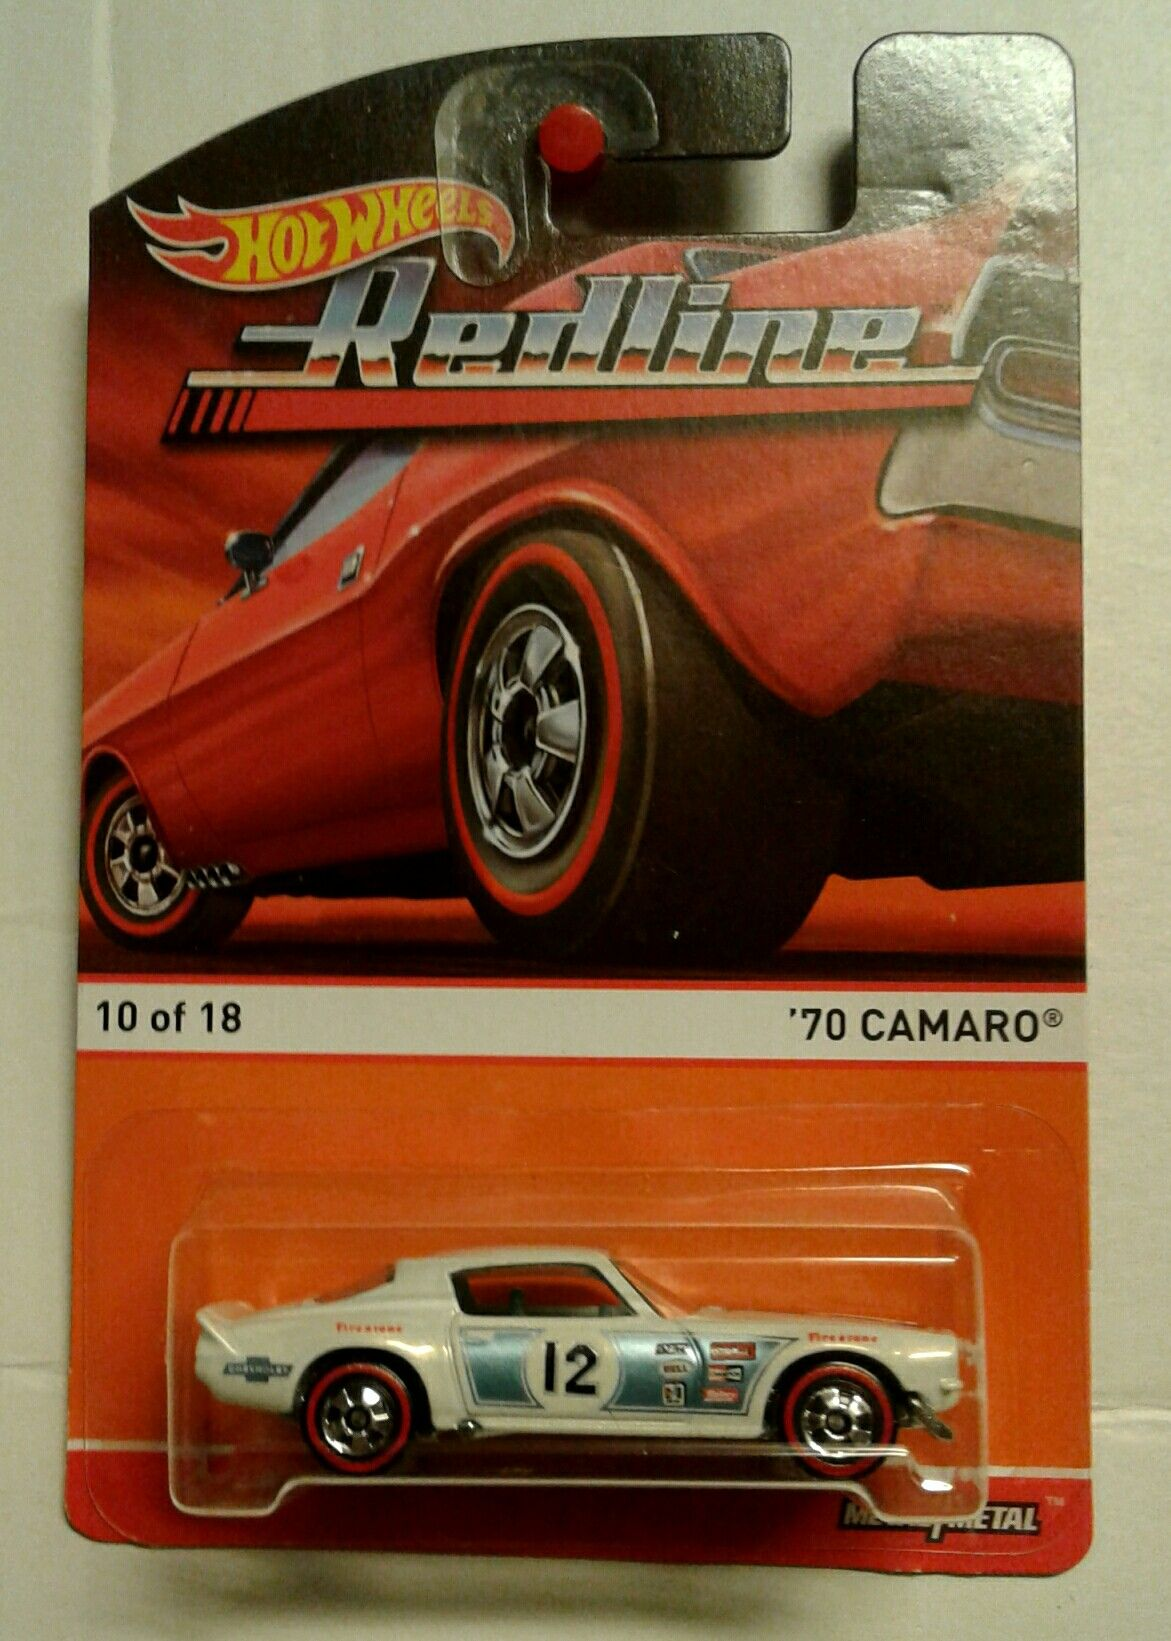 583b94f159cf8cd7d46f8cdf04405499 Mesmerizing Hot Wheels Speed Machines Lamborghini Countach Cars Trend